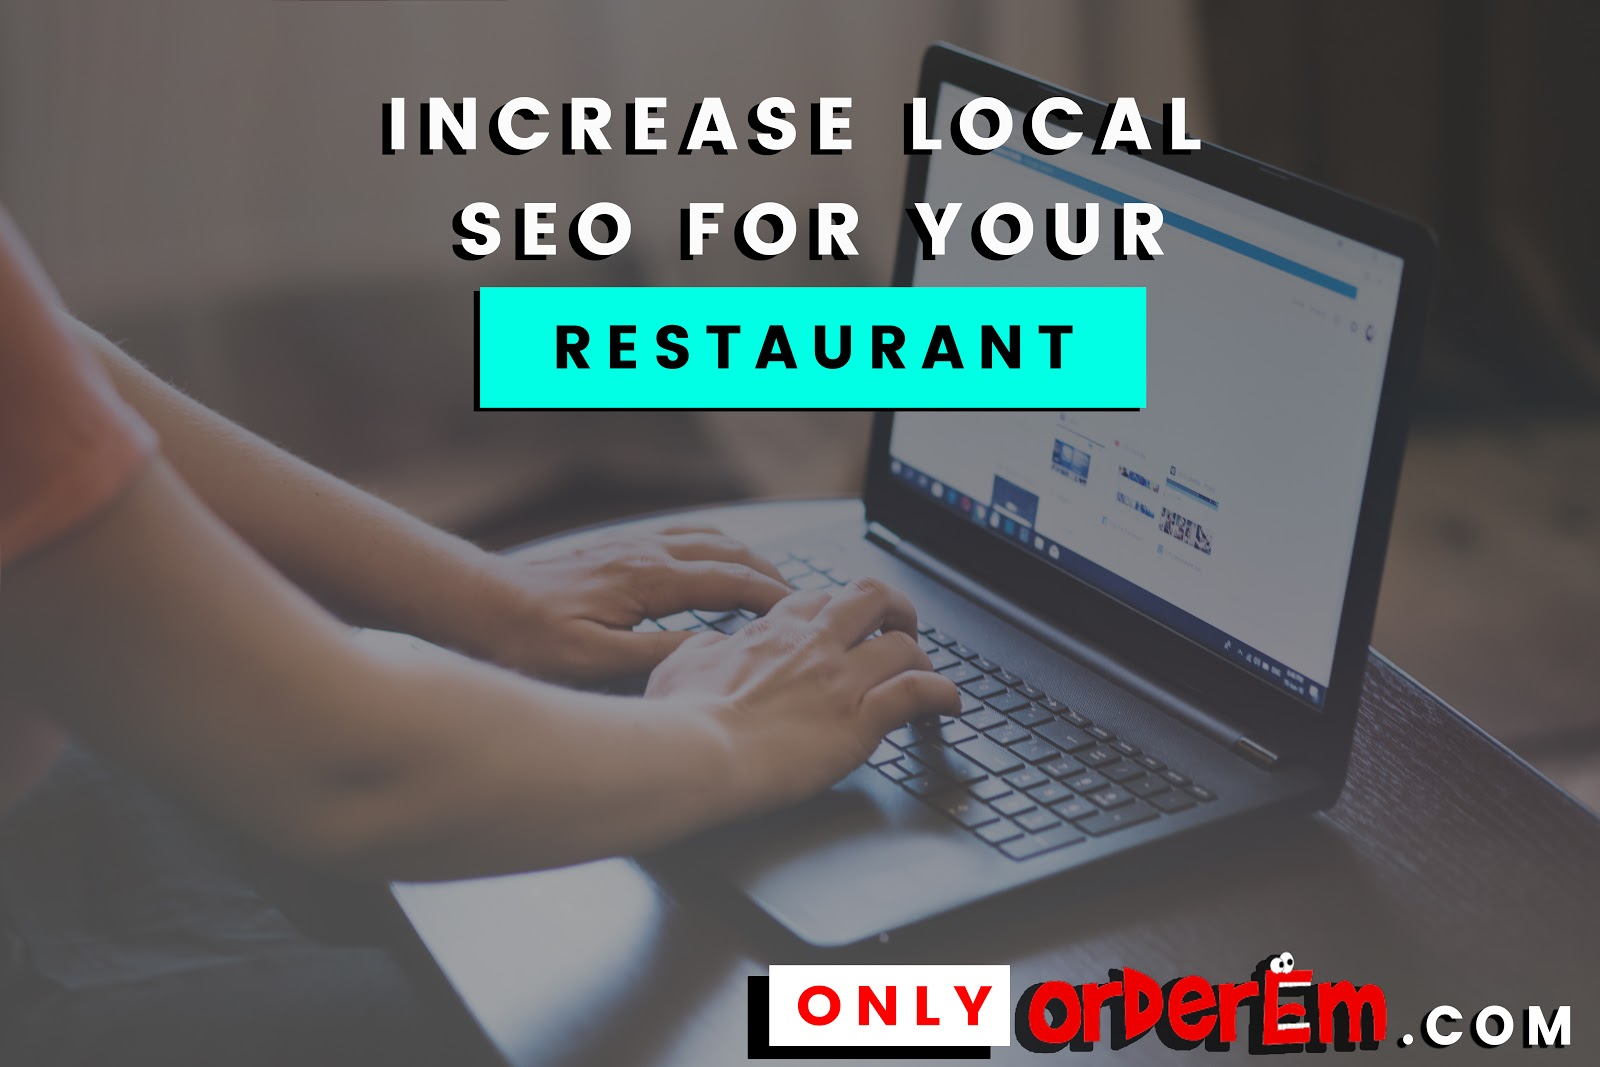 Increase Local SEO For Your Restaurant